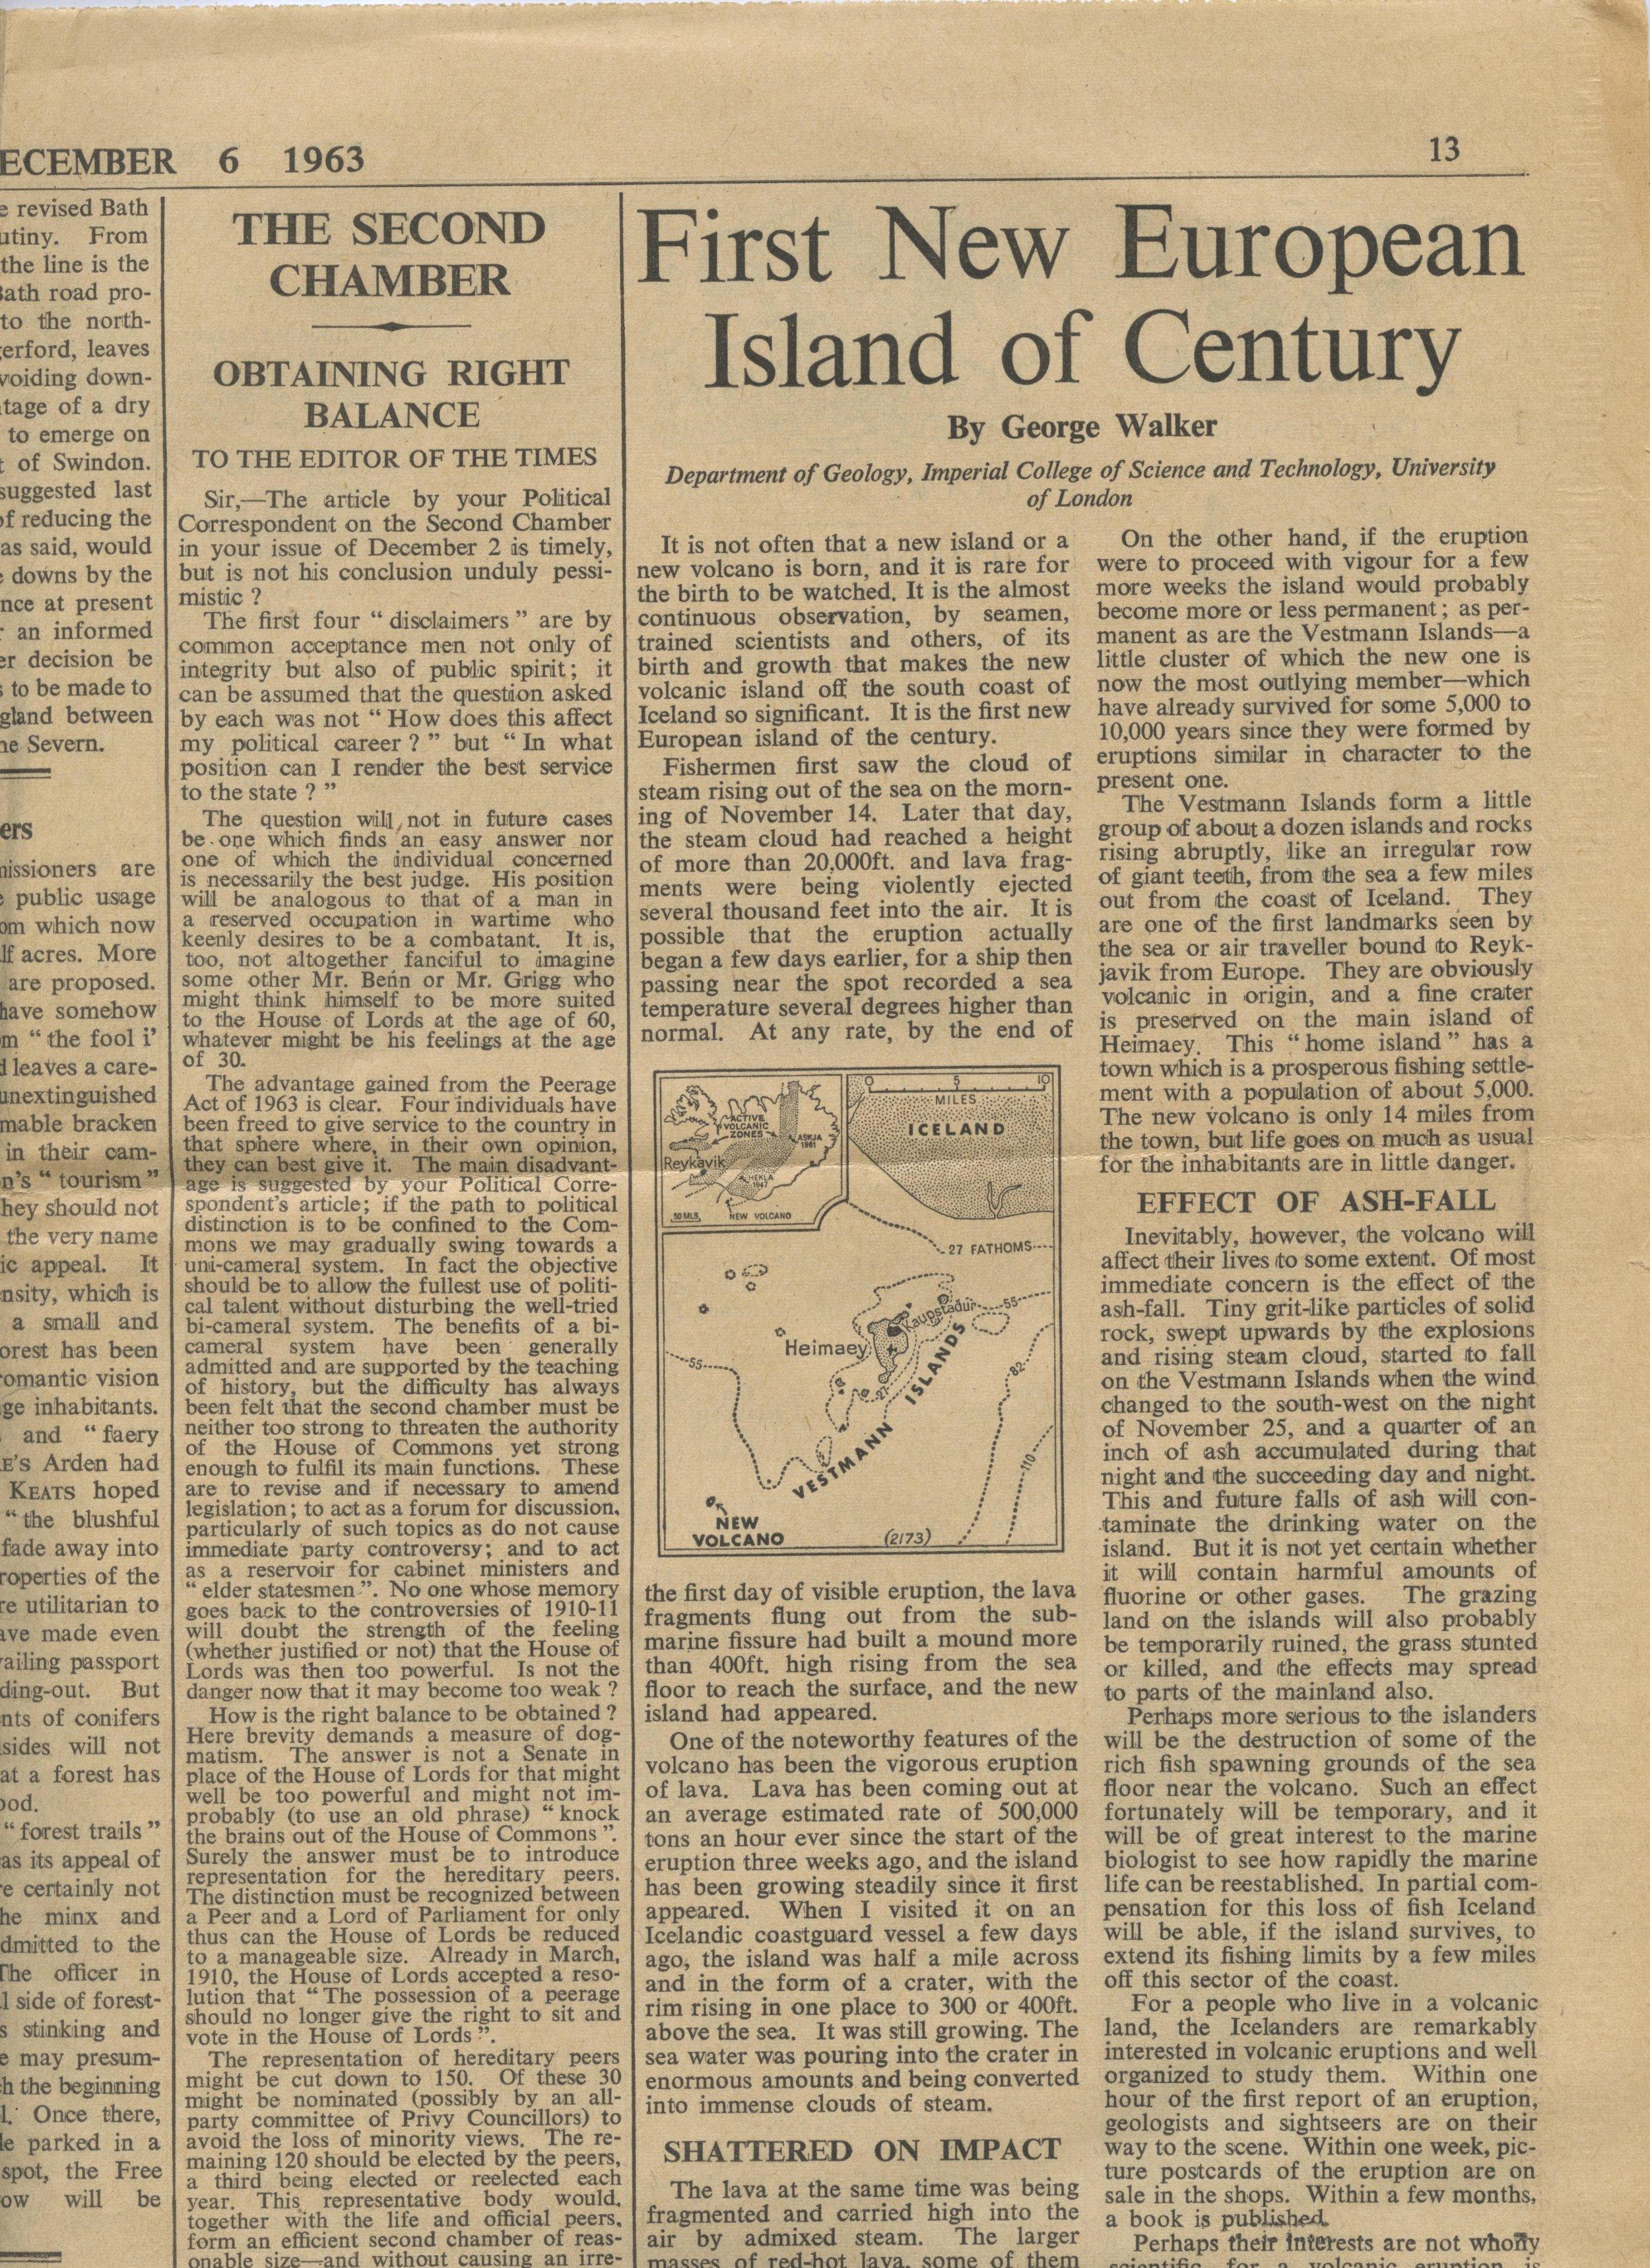 strosey island creation Times article 'ch 8 illustrations'.jpeg